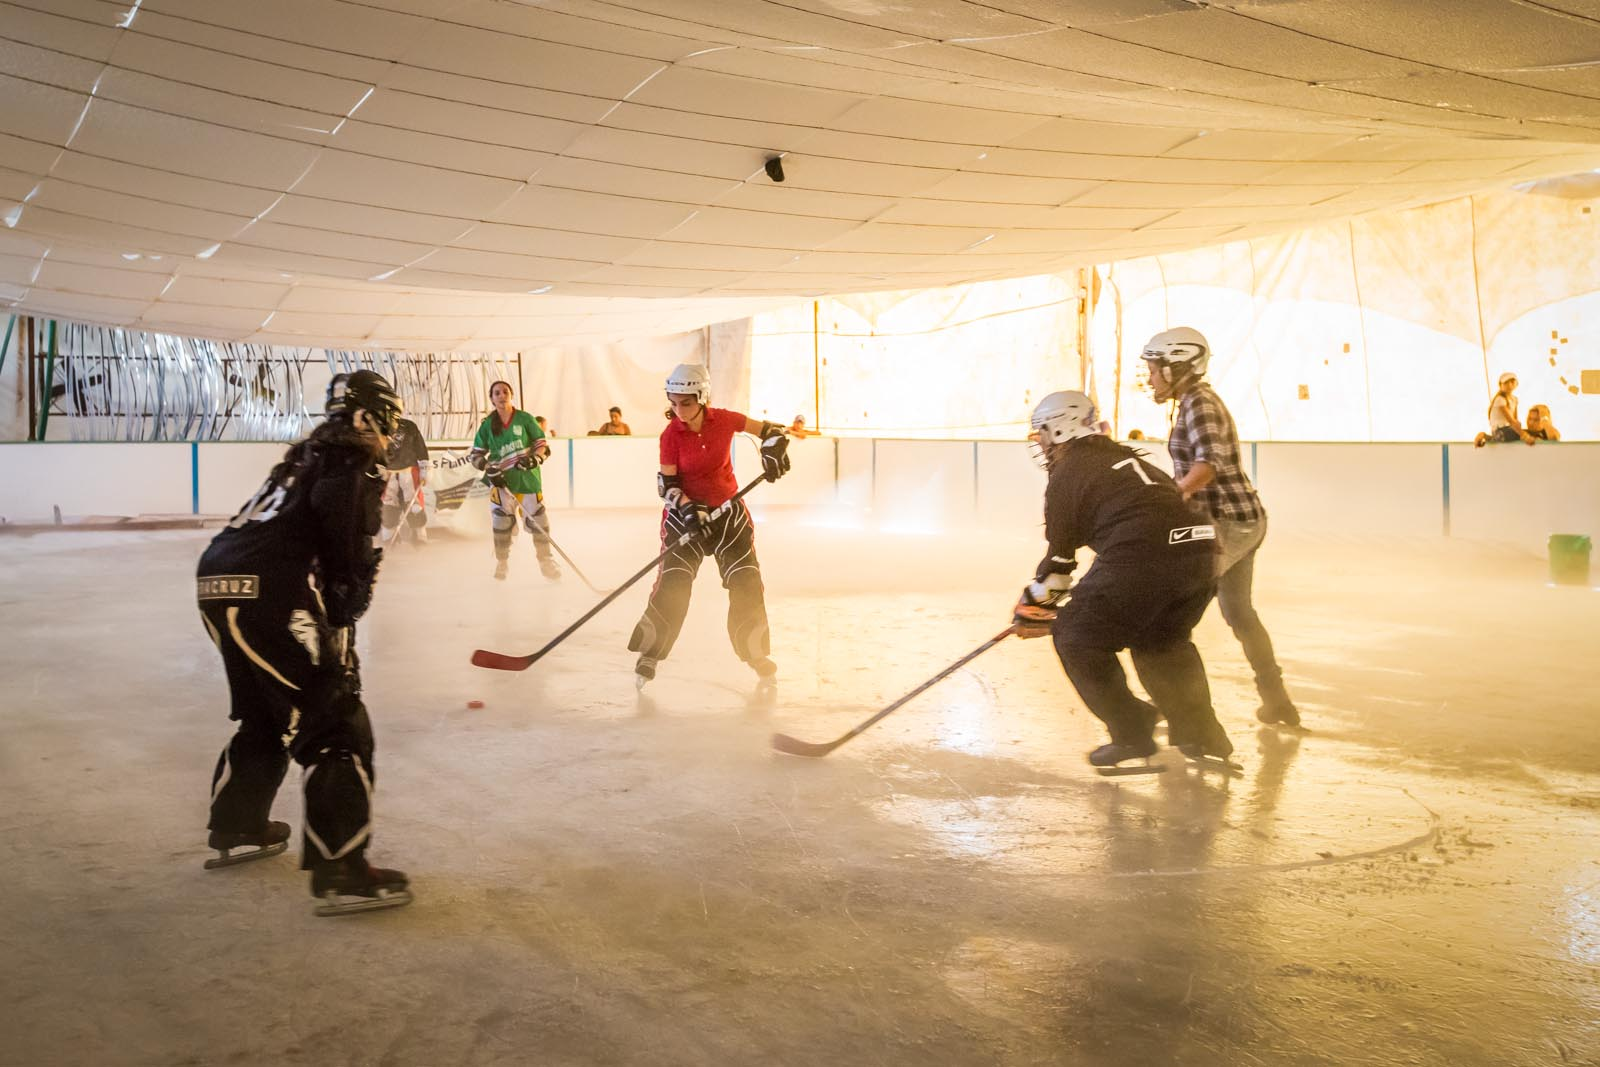 Only in Mexico will you find yourself inside a giant styrofoam cooler where  people can play ice hockey at the Veracruz State Fair.